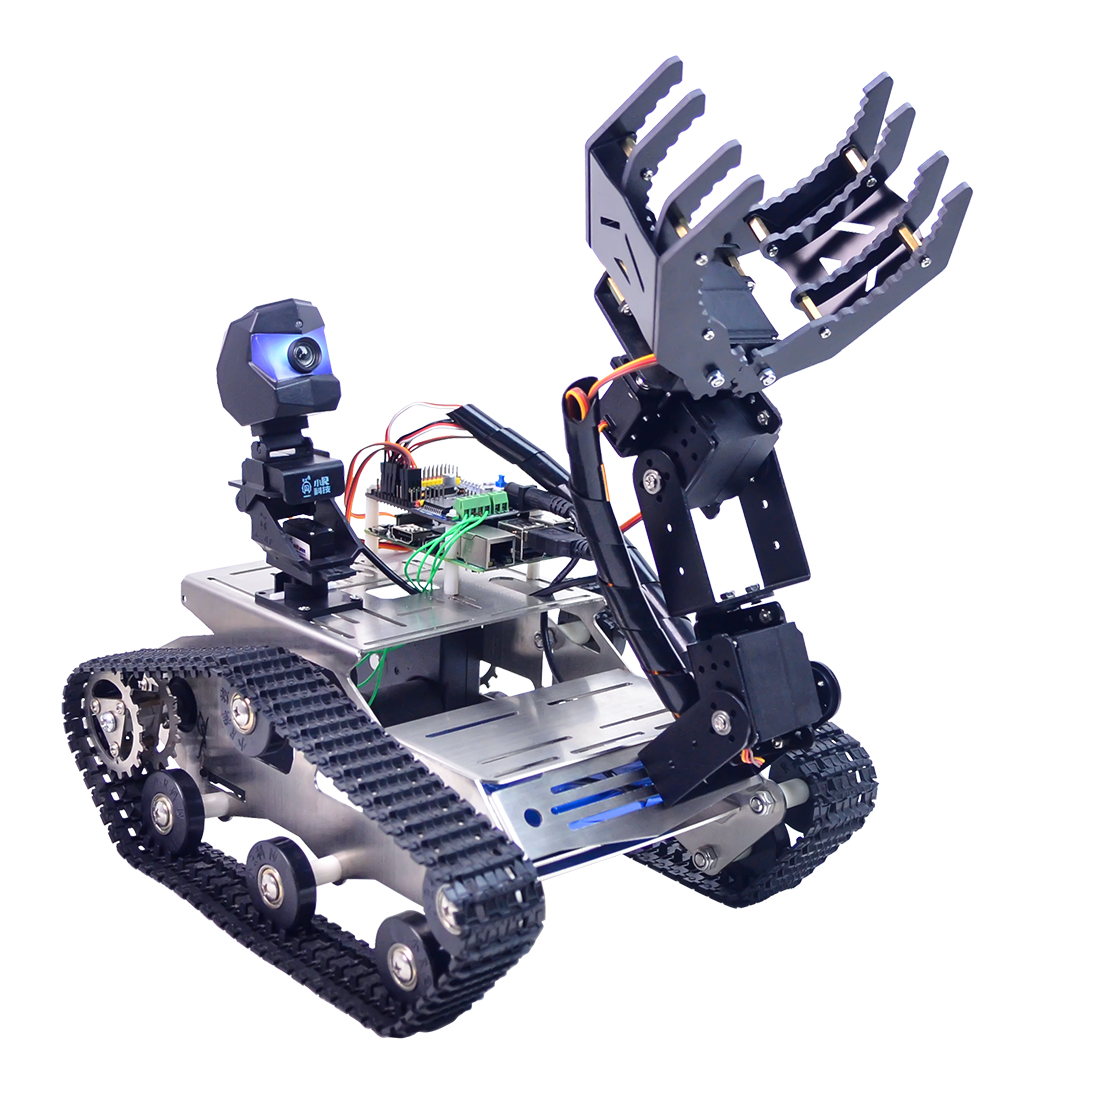 MODIKER Programmable TH WiFi Bluetooth FPV Tank Robot Car Kit With Arm For Arduino MEGA Standard Large Claw High Tech